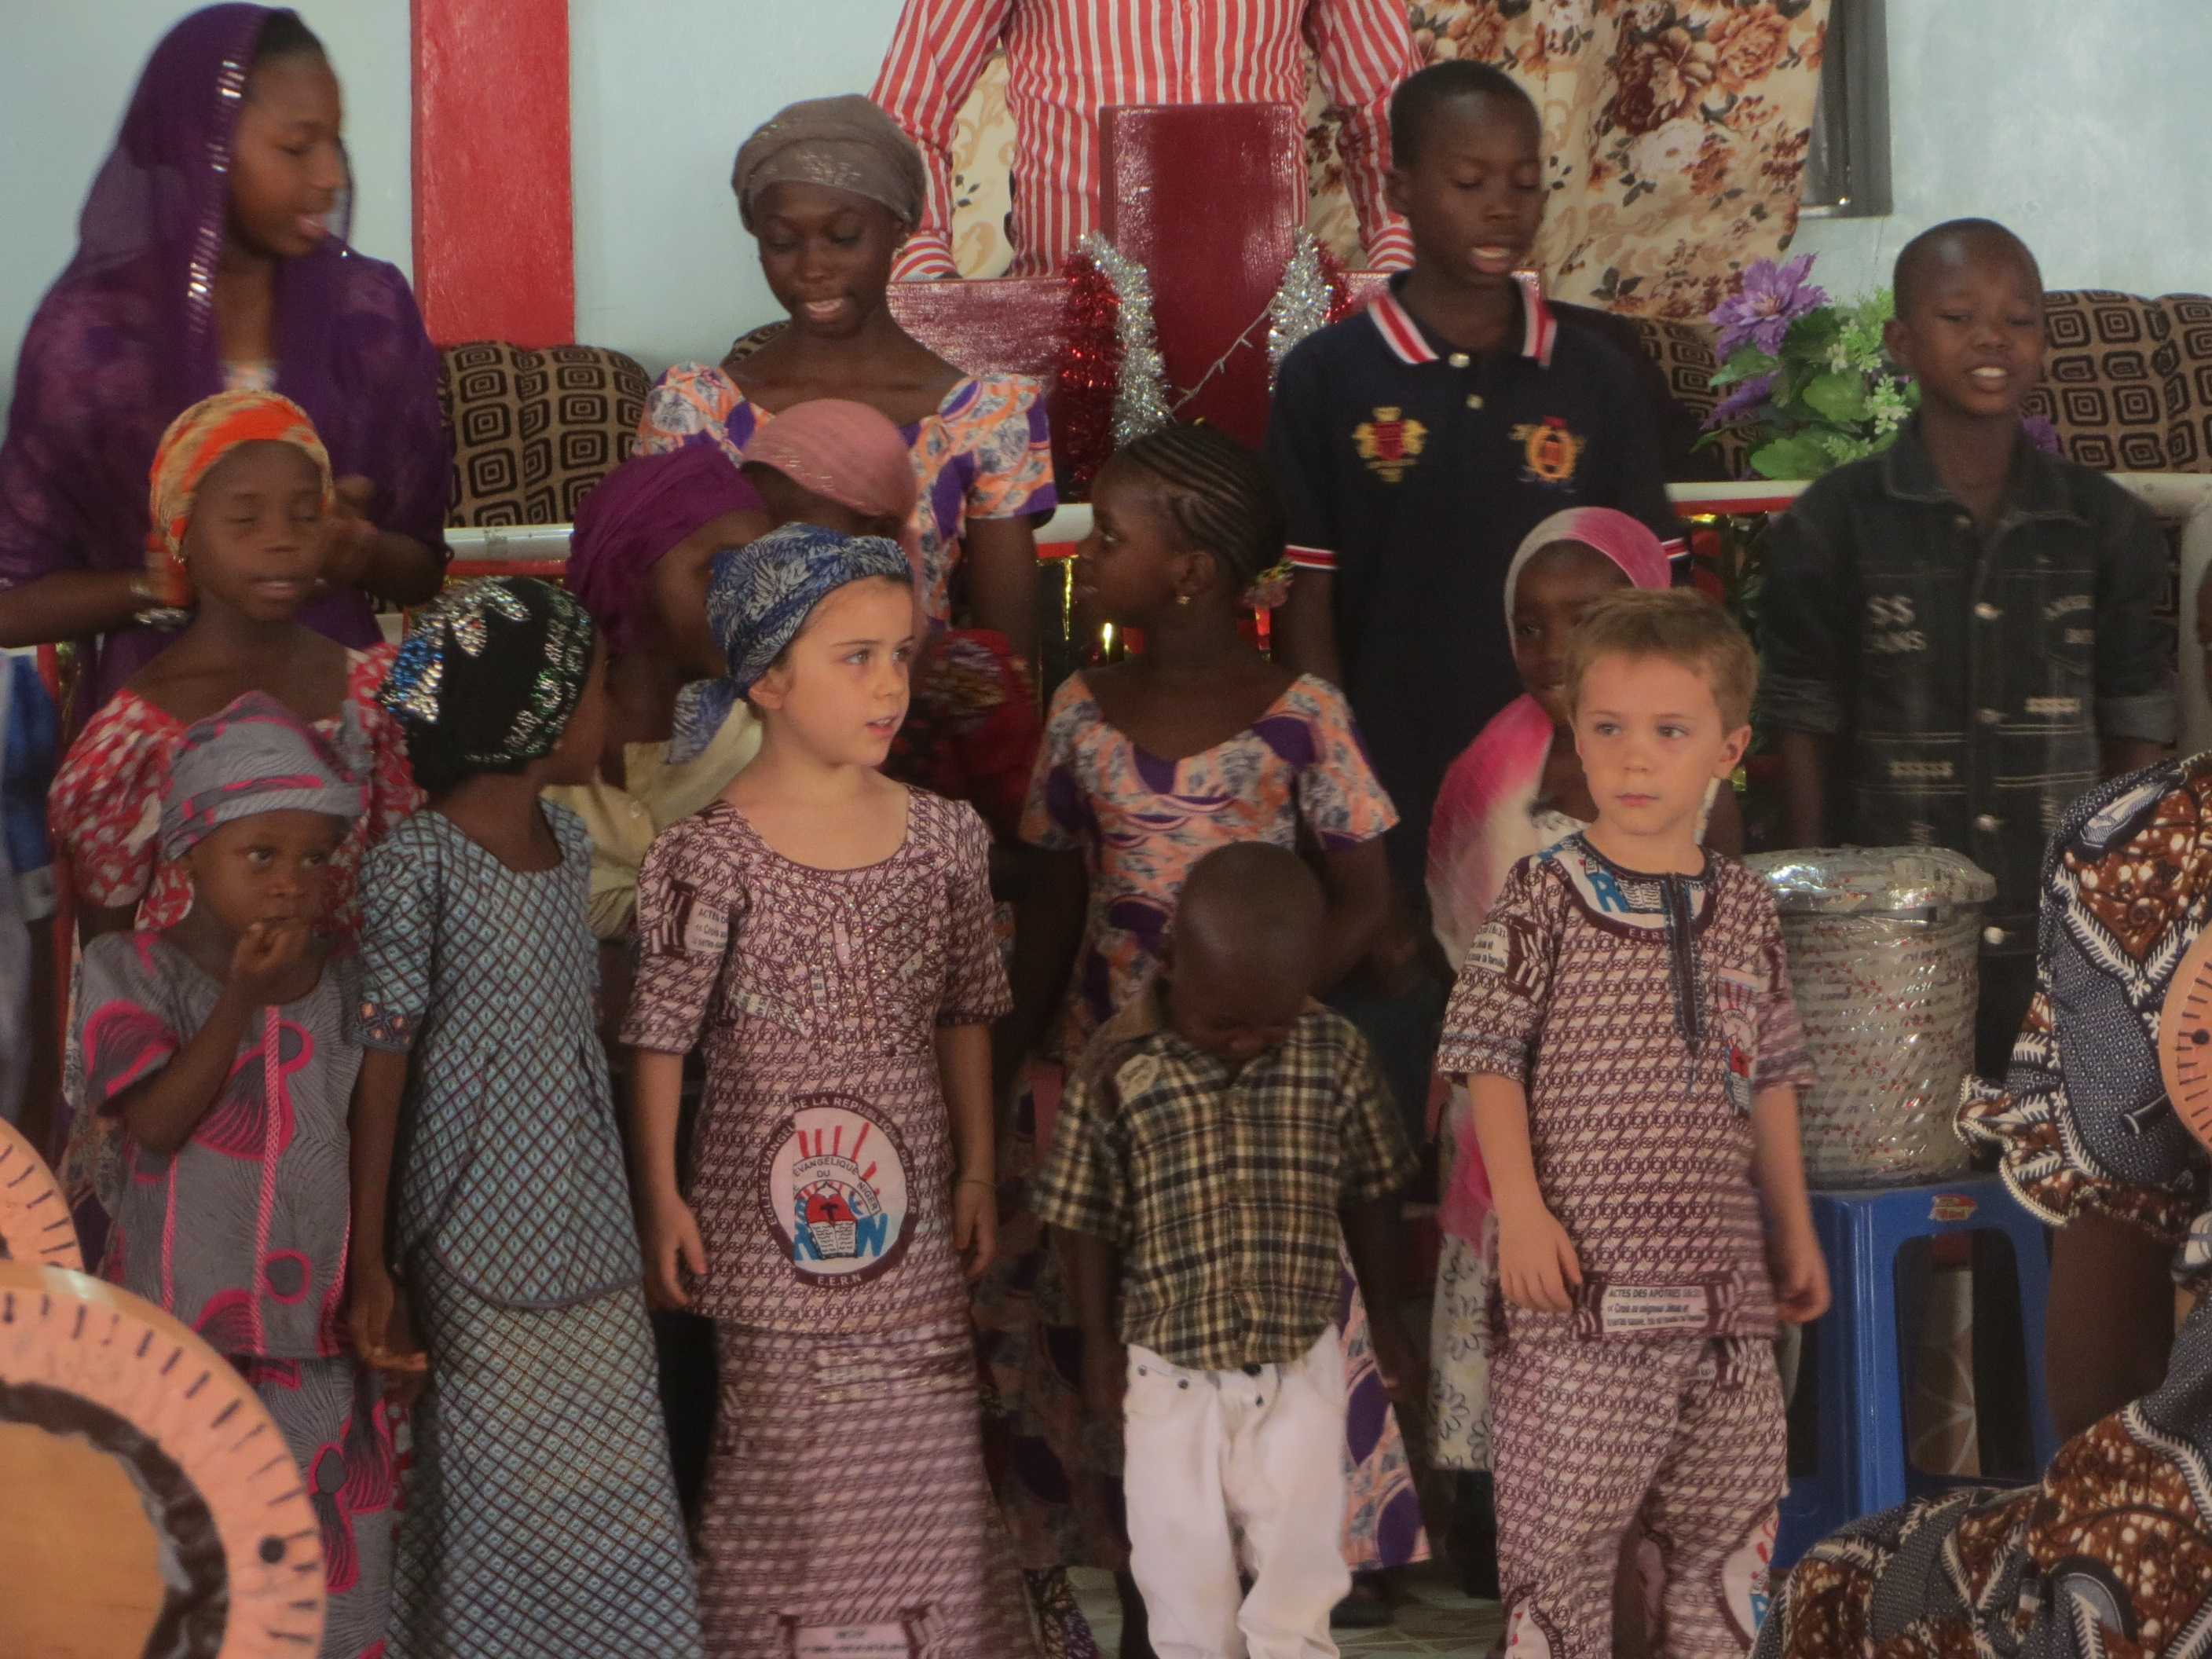 A group of children singing during their time at church.